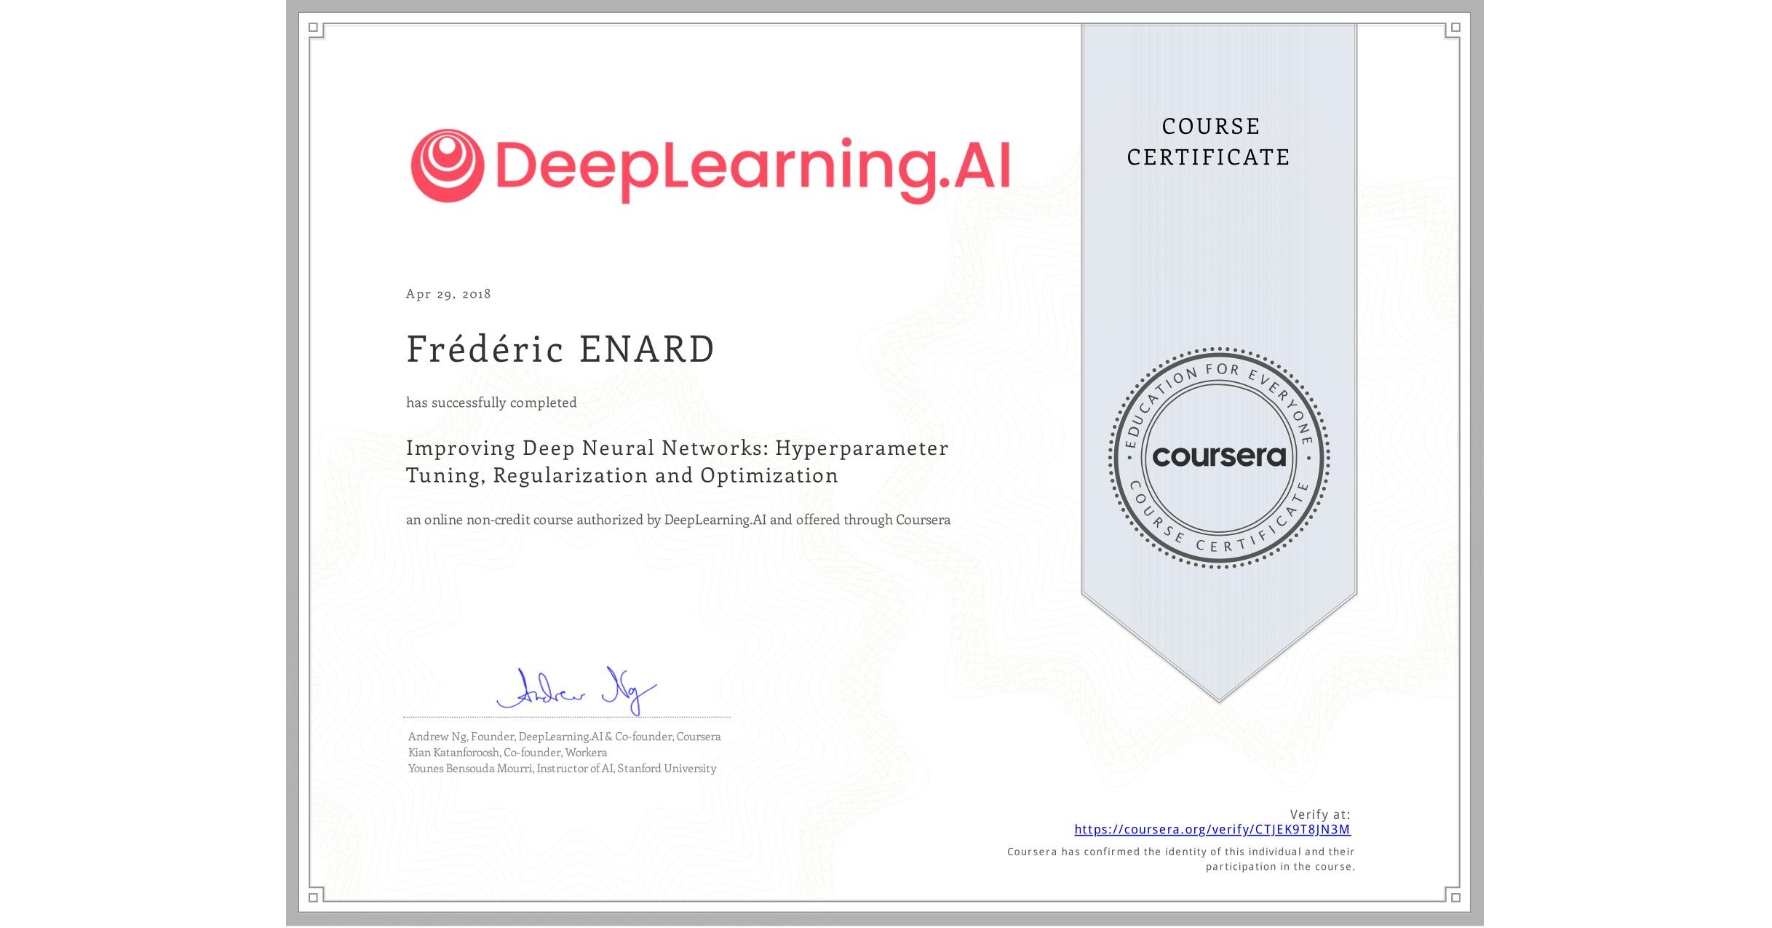 View certificate for Frédéric ENARD, Improving Deep Neural Networks: Hyperparameter Tuning, Regularization and Optimization, an online non-credit course authorized by DeepLearning.AI and offered through Coursera